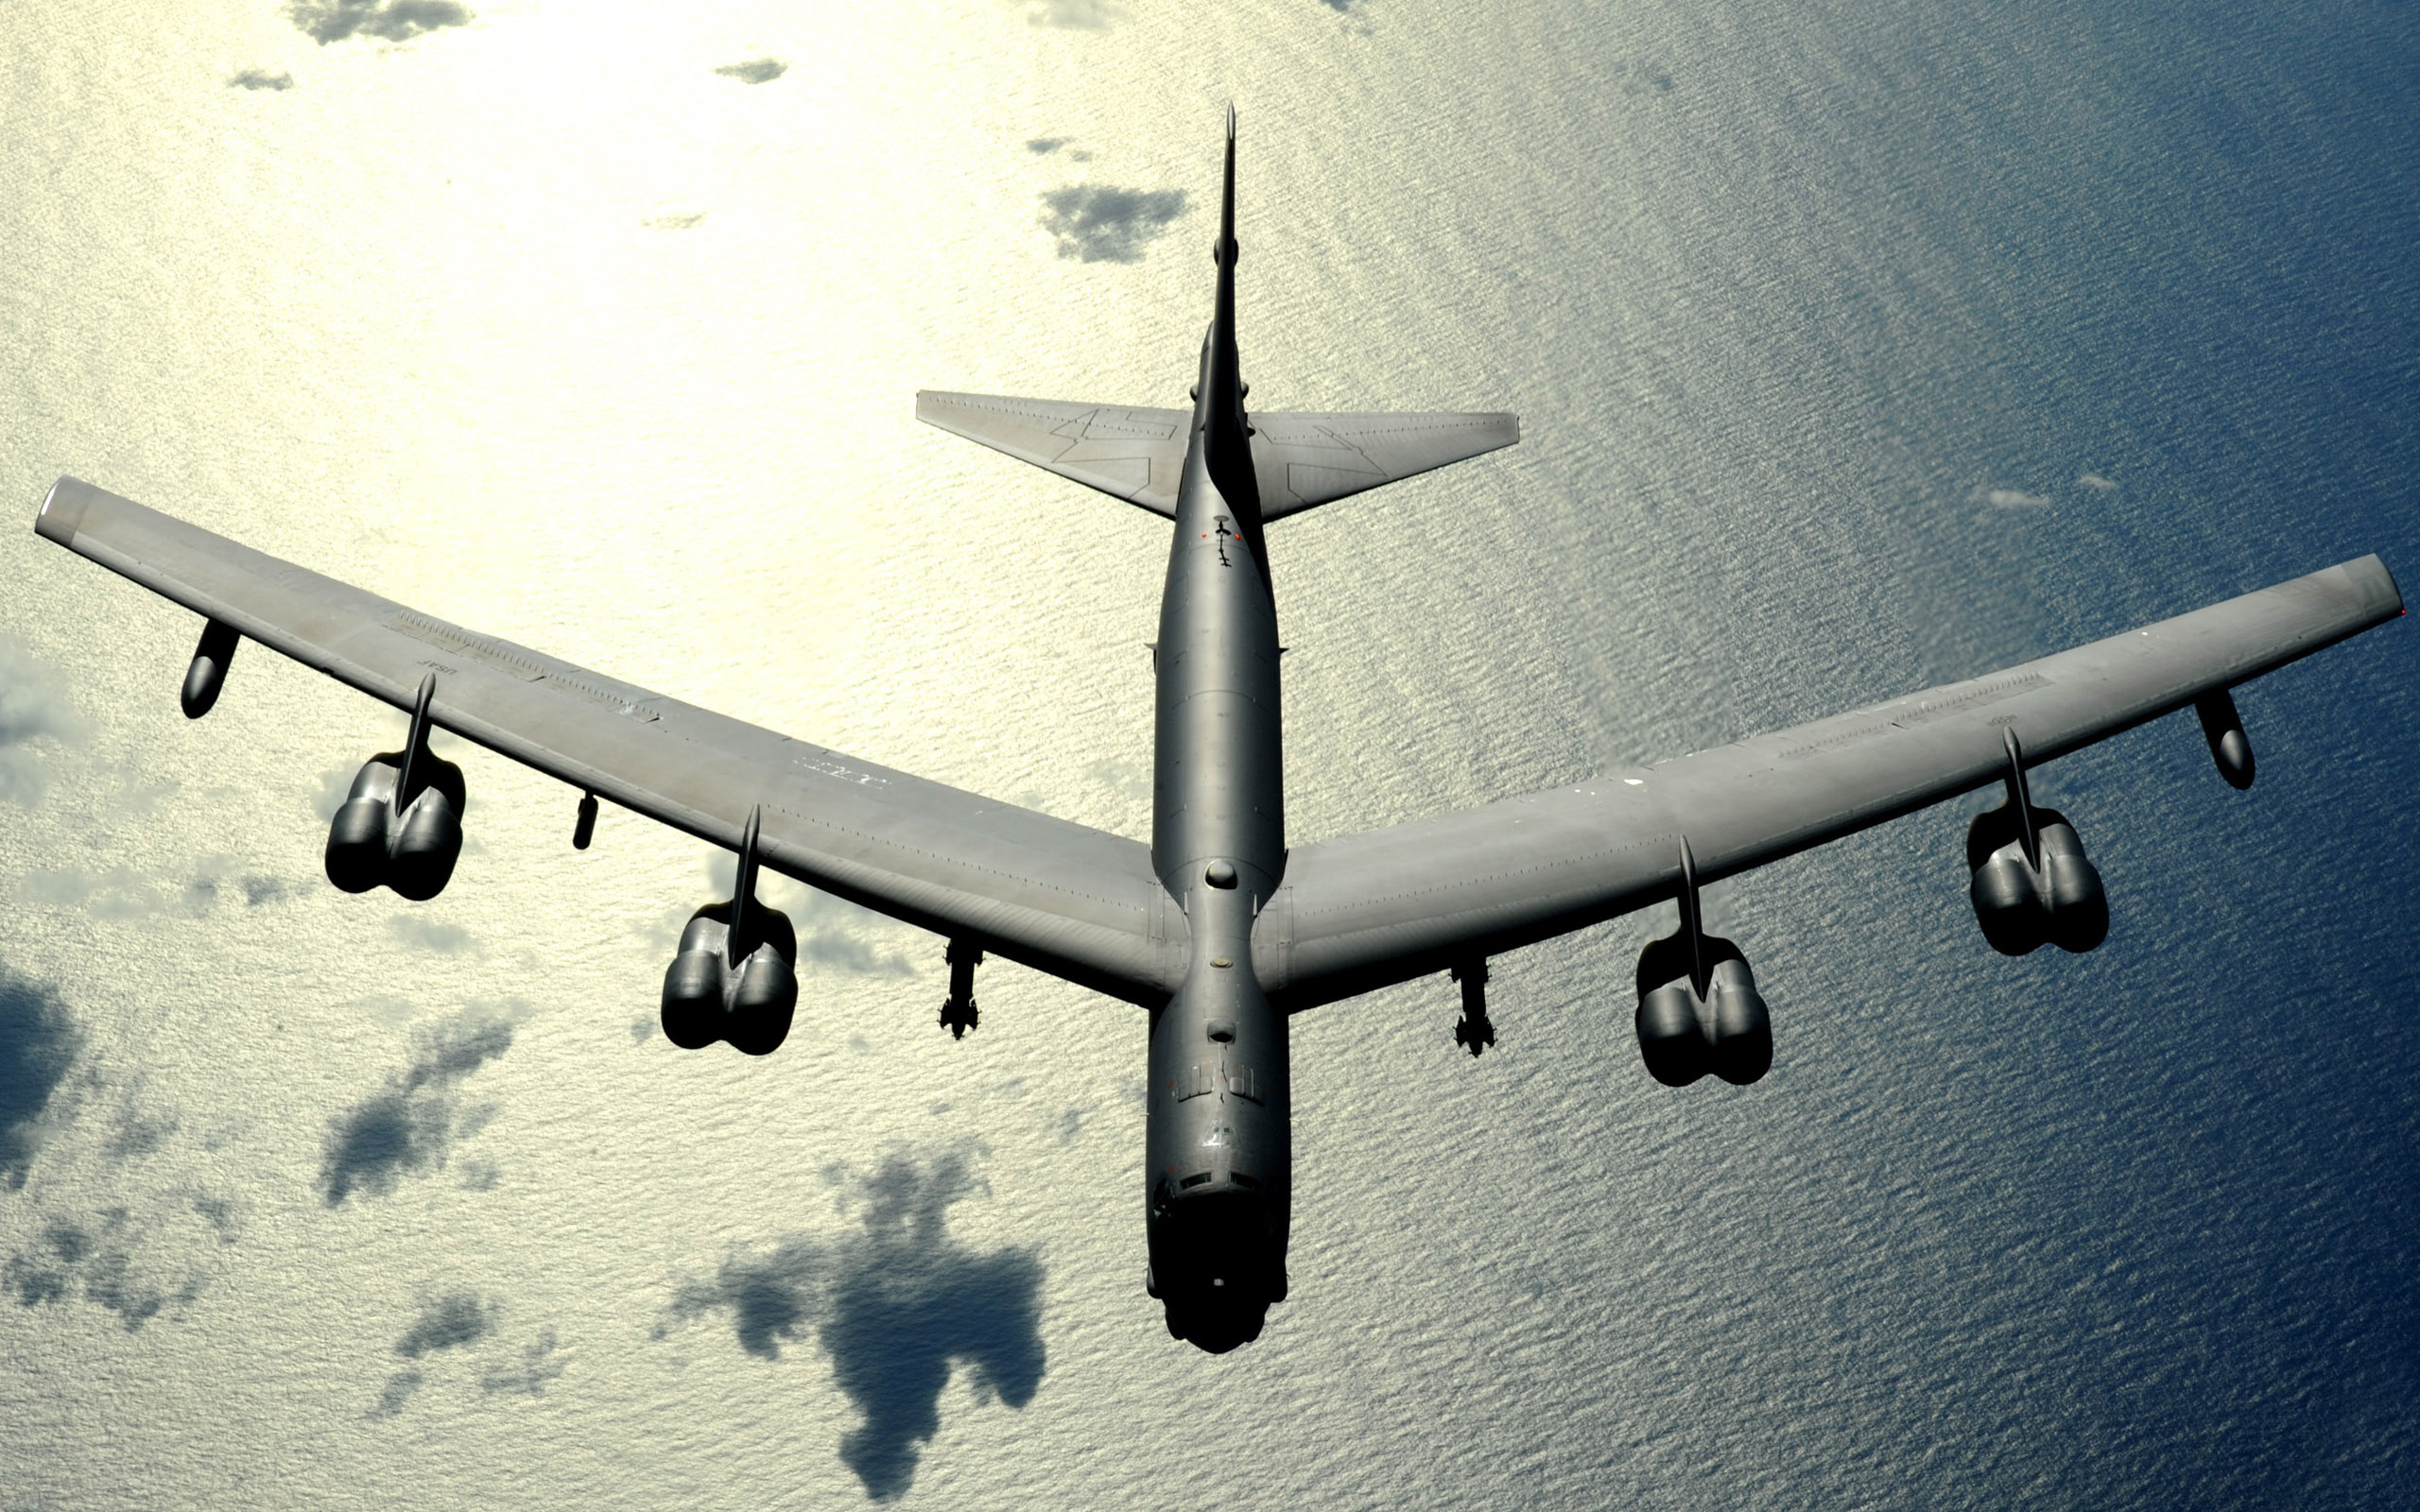 B 52 Stratofortress Bomber 618.68 Kb